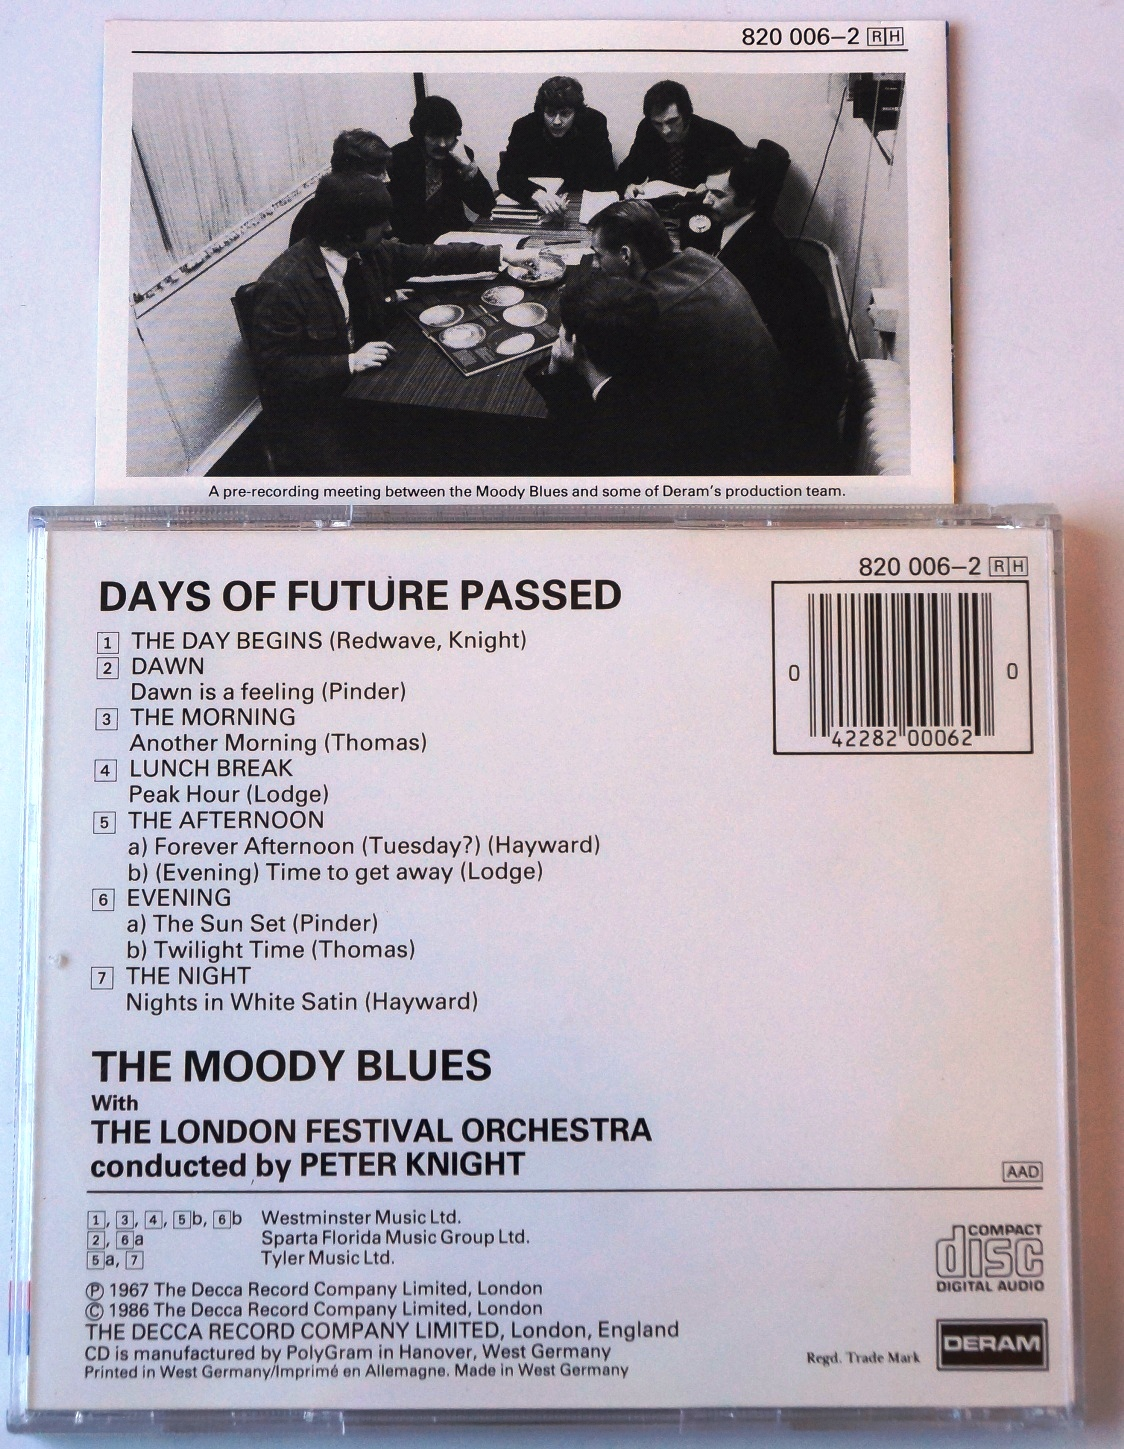 MOODY BLUES THE 1967